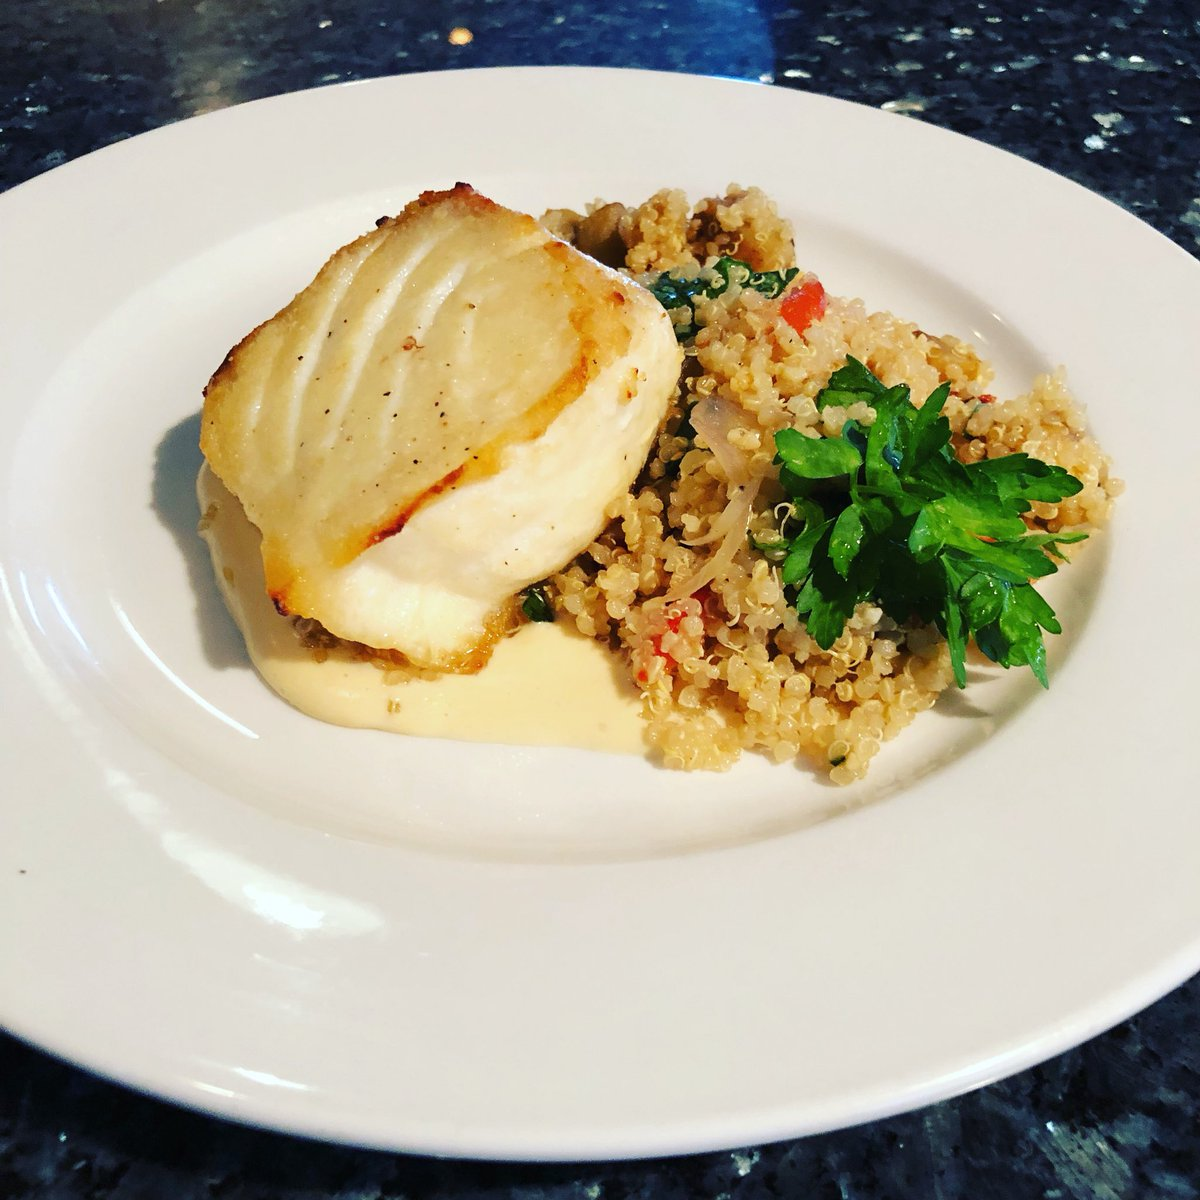 Halibut•Mediterranean Quinoa•Roasted Red Peppers•Eggplant•Spinach•Smoked Gouda Cream Sauce. #Delicious #Special https://t.co/IukZderh1q